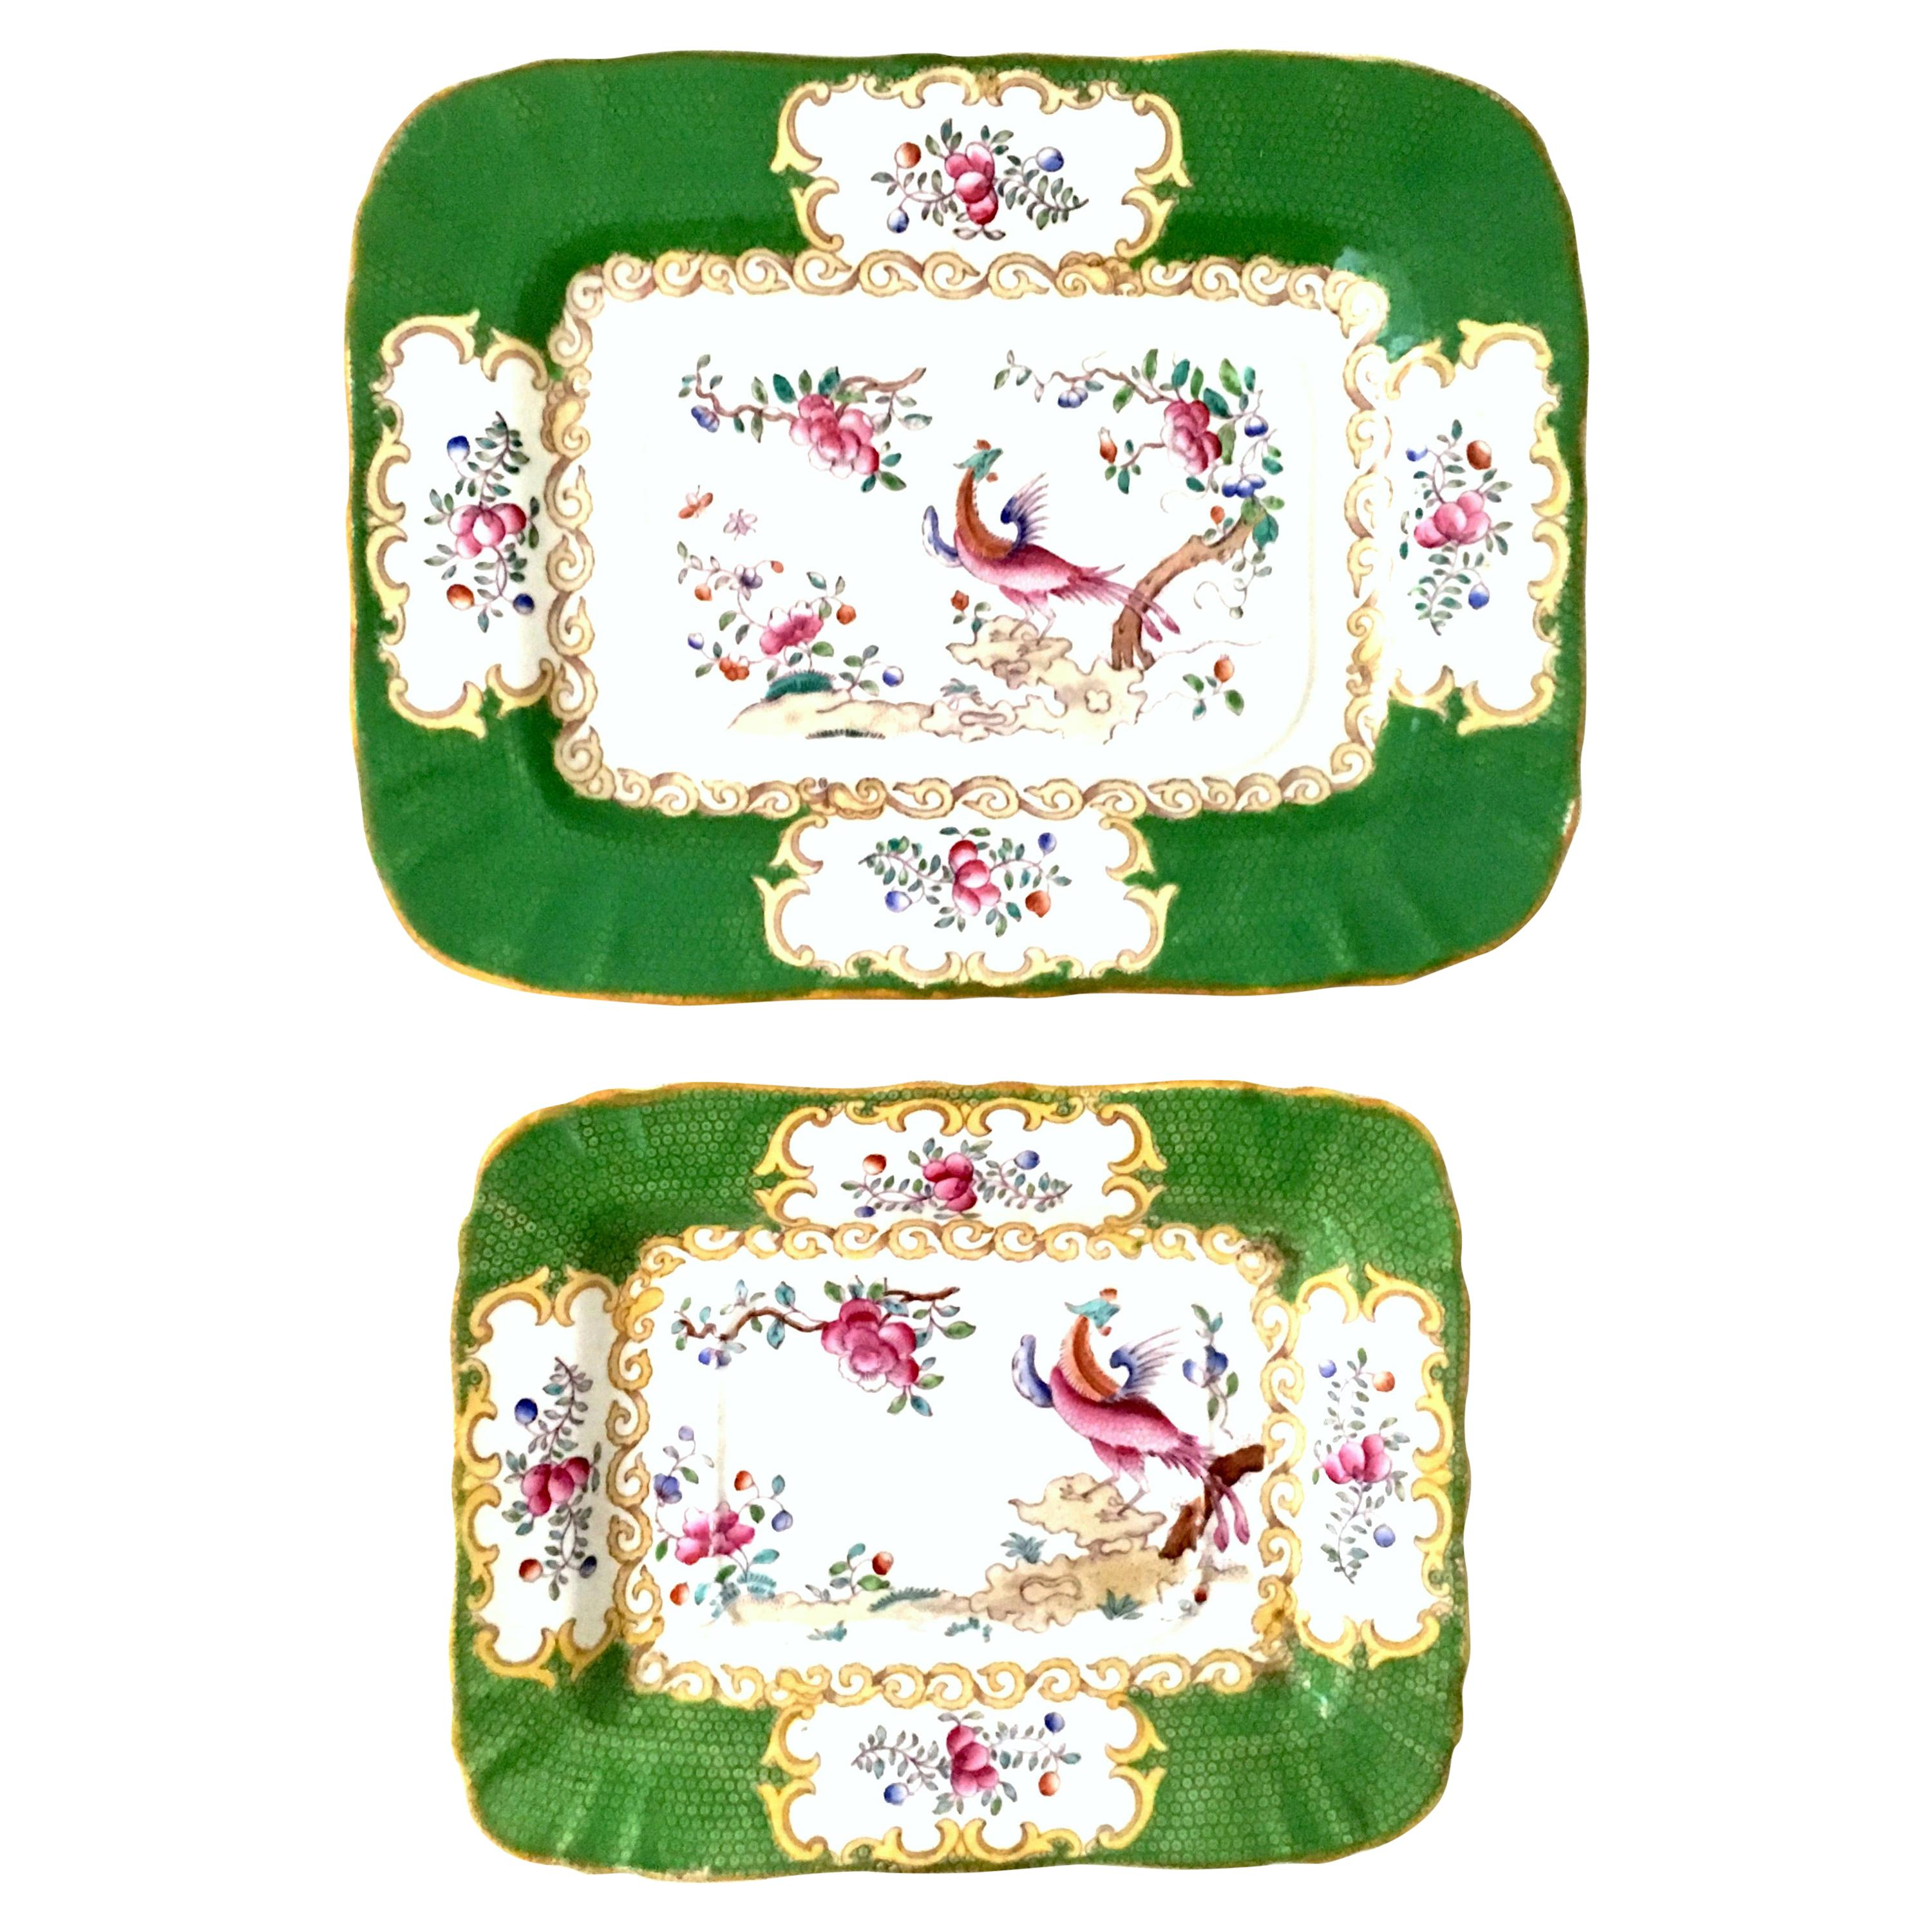 Antique Minton England Hand Painted Porcelain & 22K Gold Tray's Set of 2